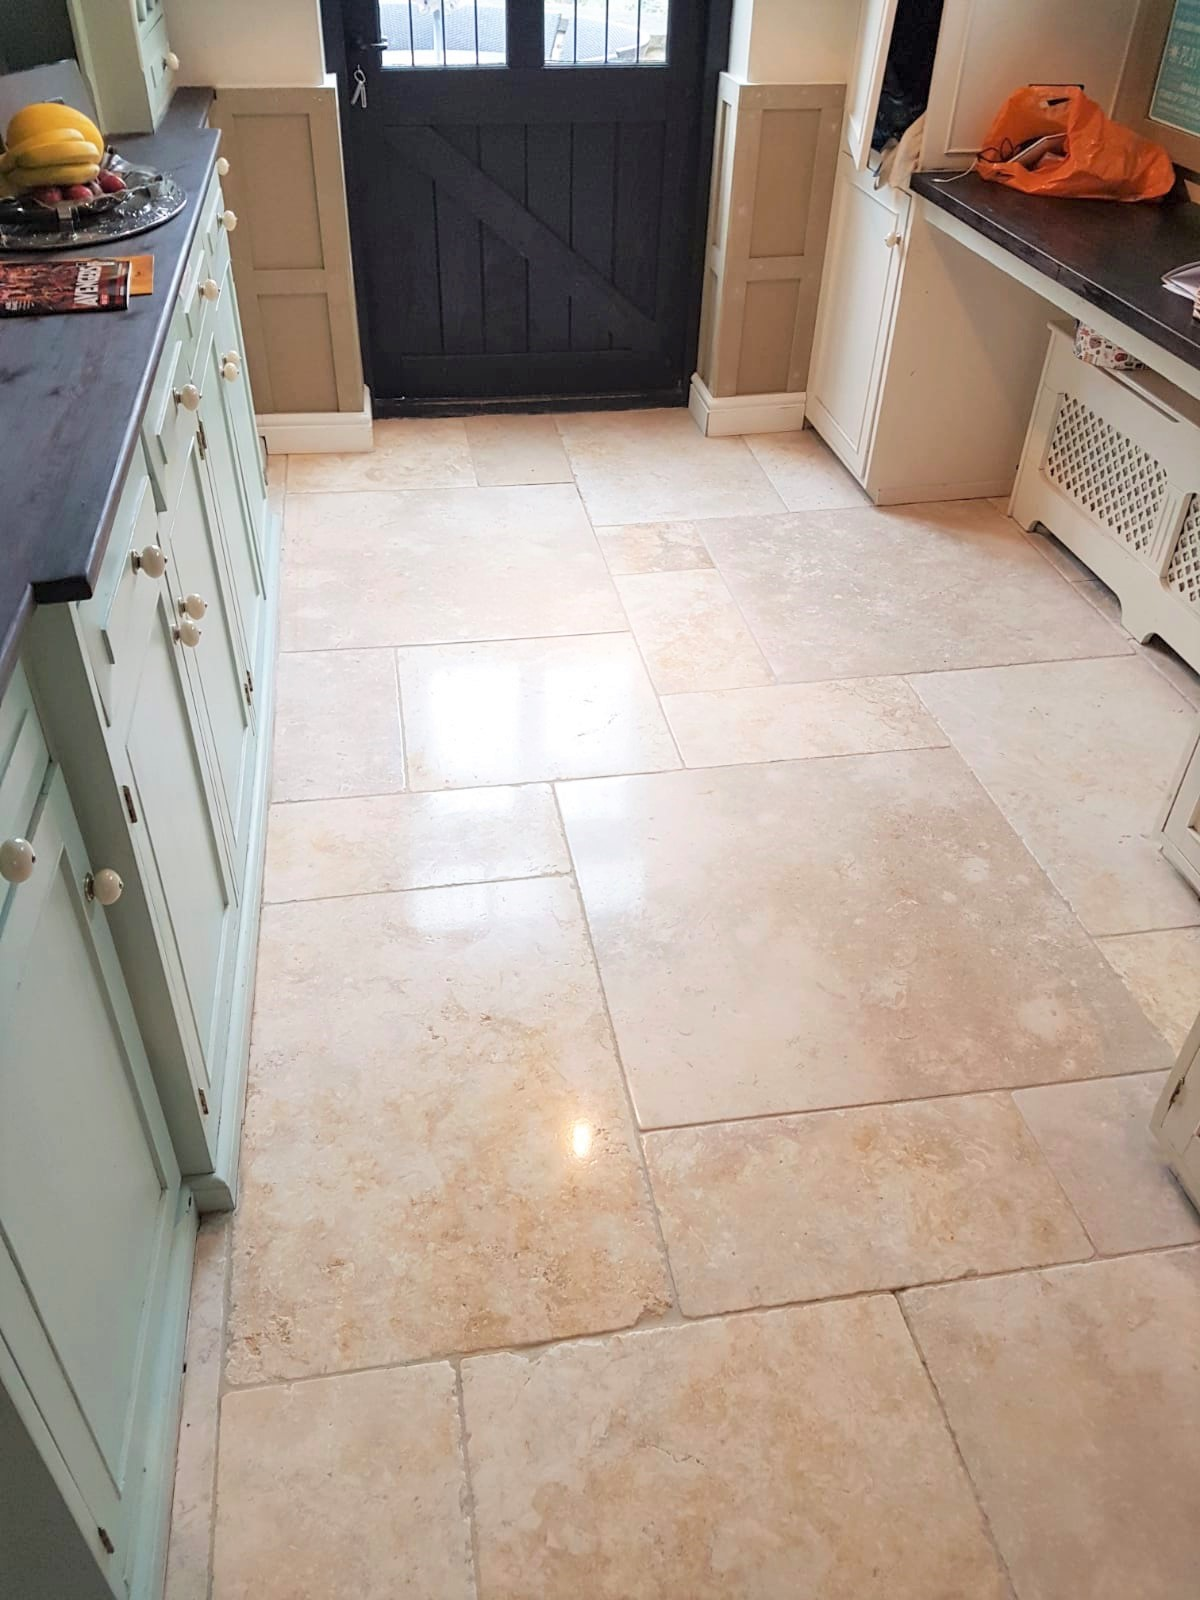 Limestone Tiled Kitchen Floor After Cleaning Knotty Green